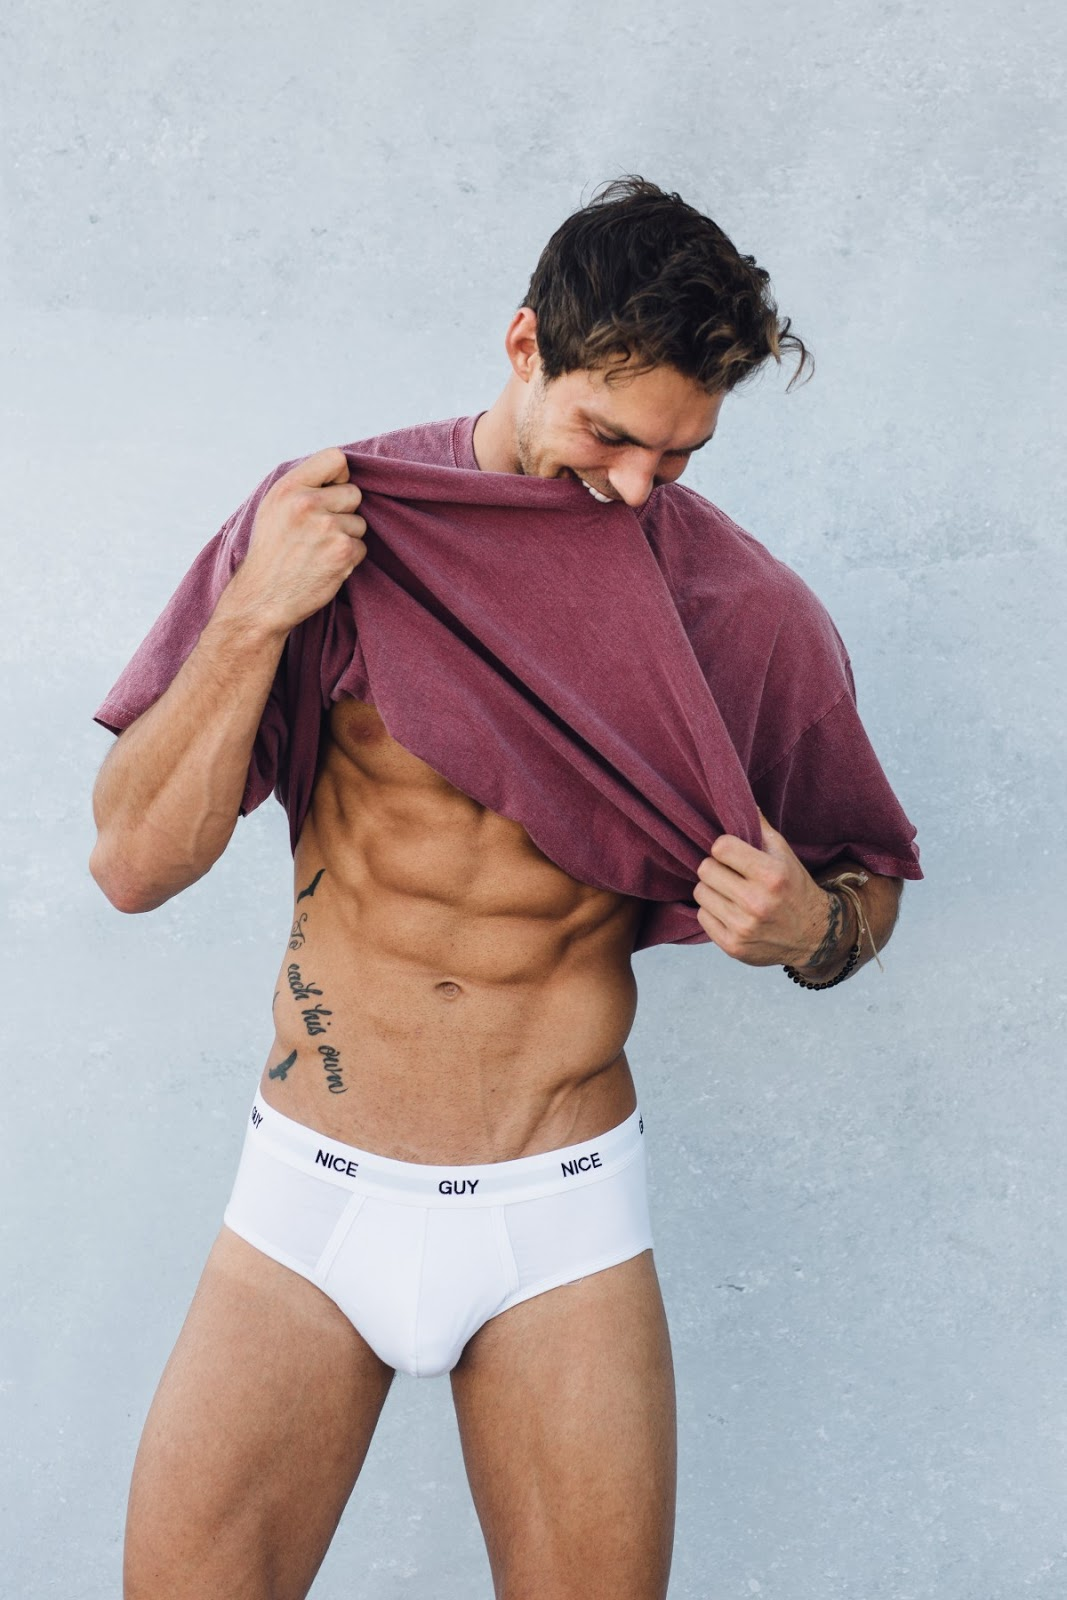 christian-hogue-by-taylor-miller10